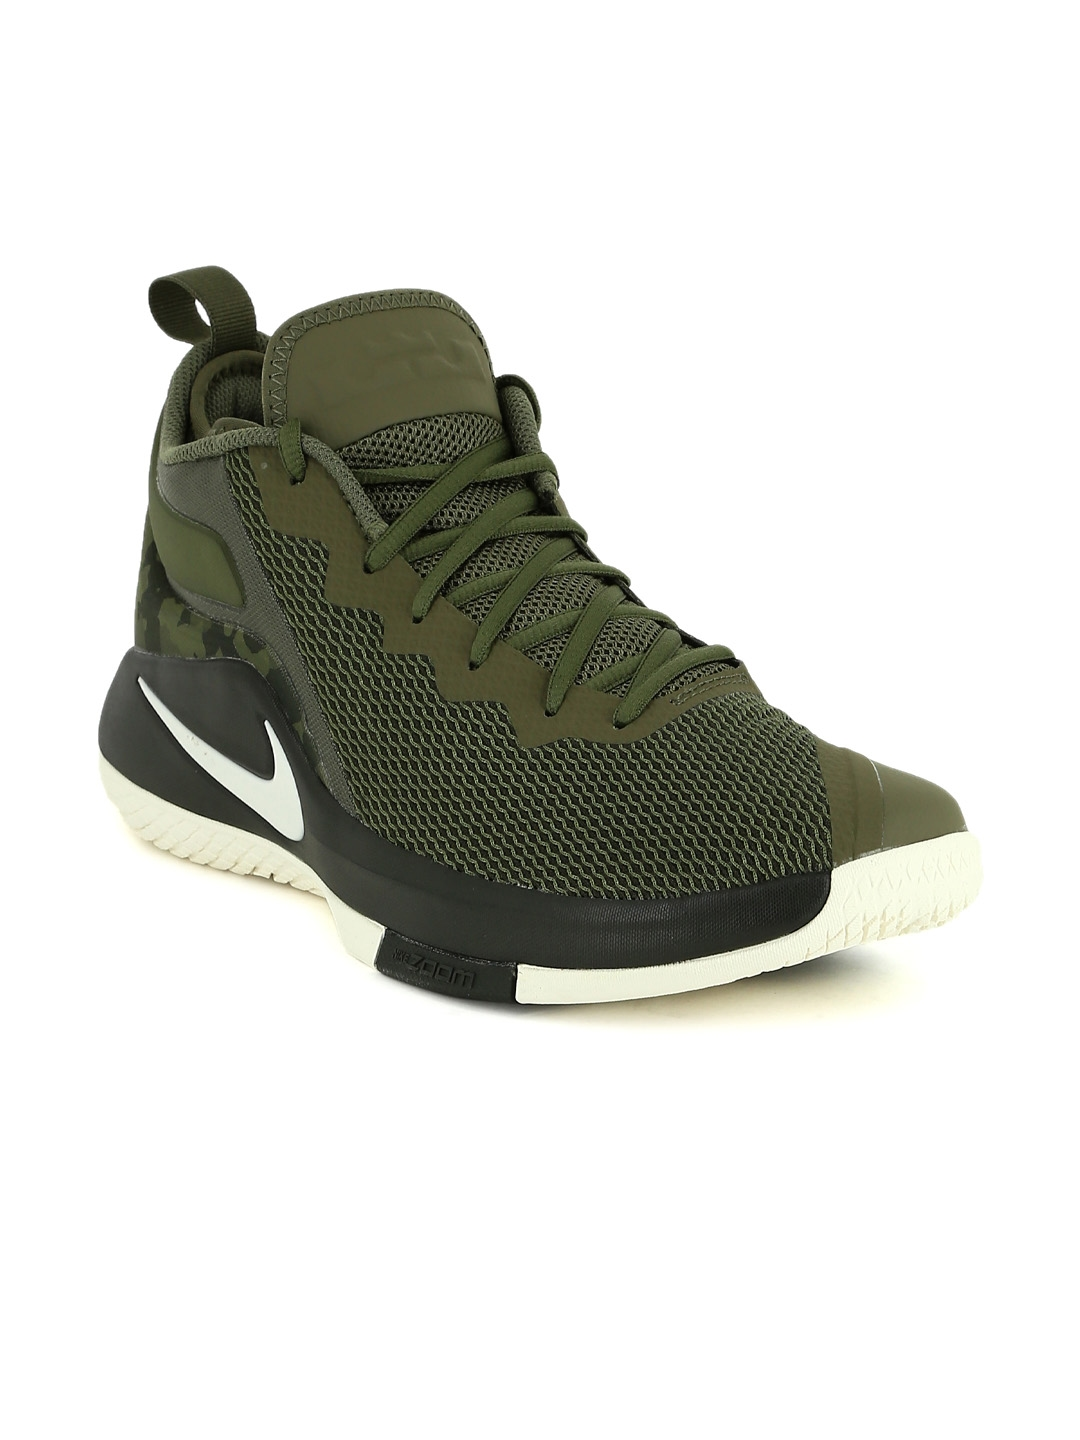 outlet store 34e1b dcd5a ... inexpensive nike men olive green textile lebron witness ii basketball  shoes 6a3bb ca94d